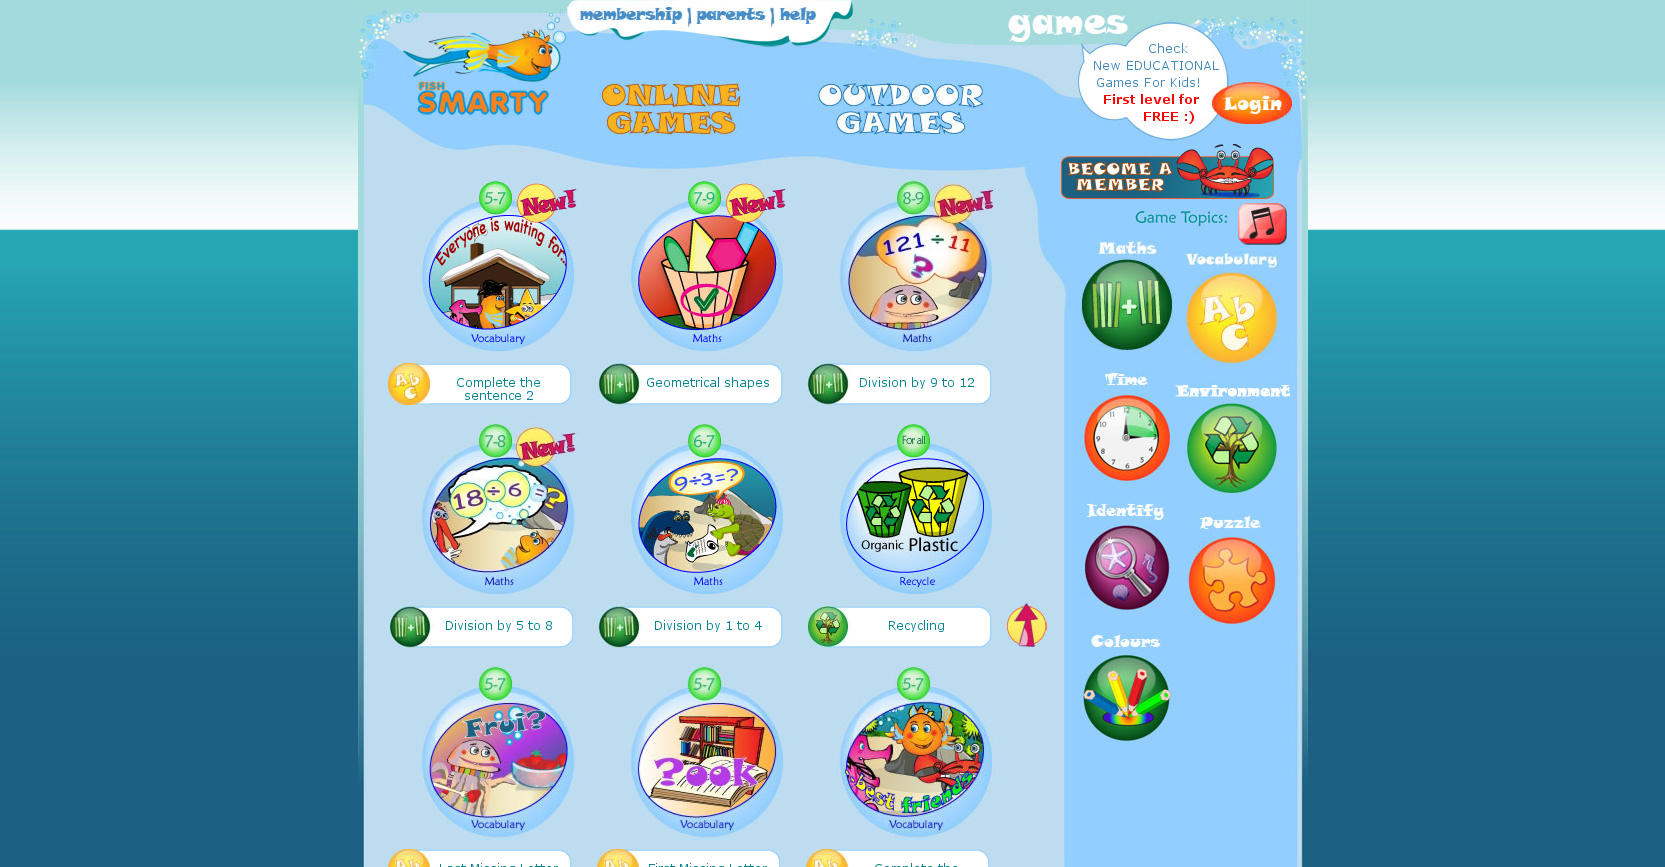 Online-Educational-Games-for-Kids-Fish-Smarty_1298367470292